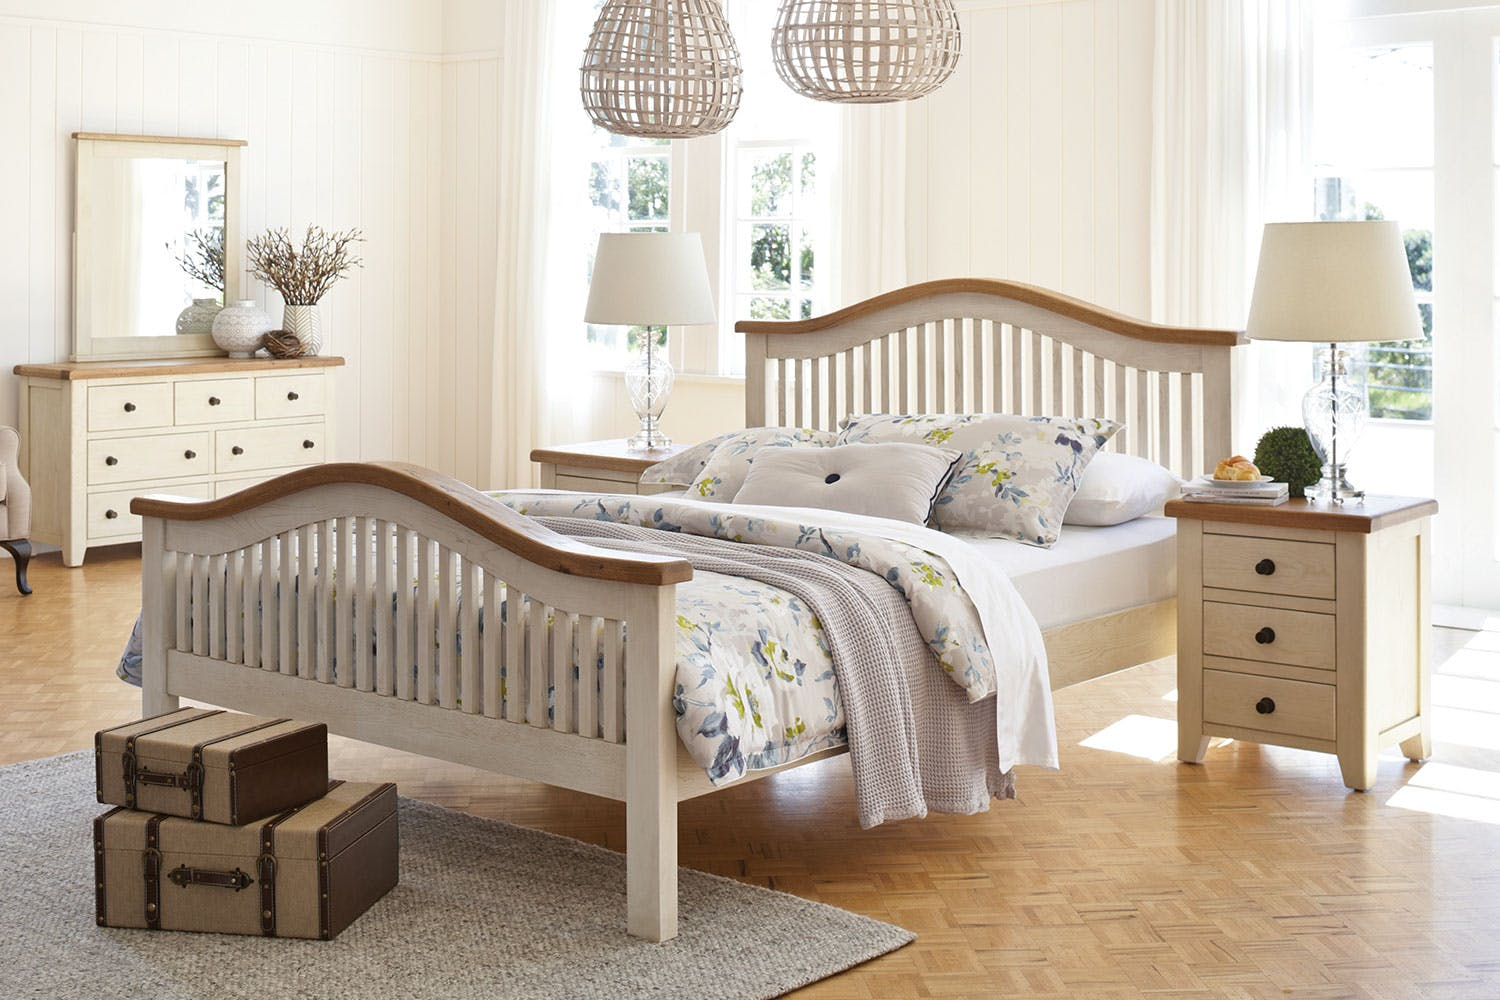 Mansfield queen slat bed frame by debonaire furniture harvey norman new zealand